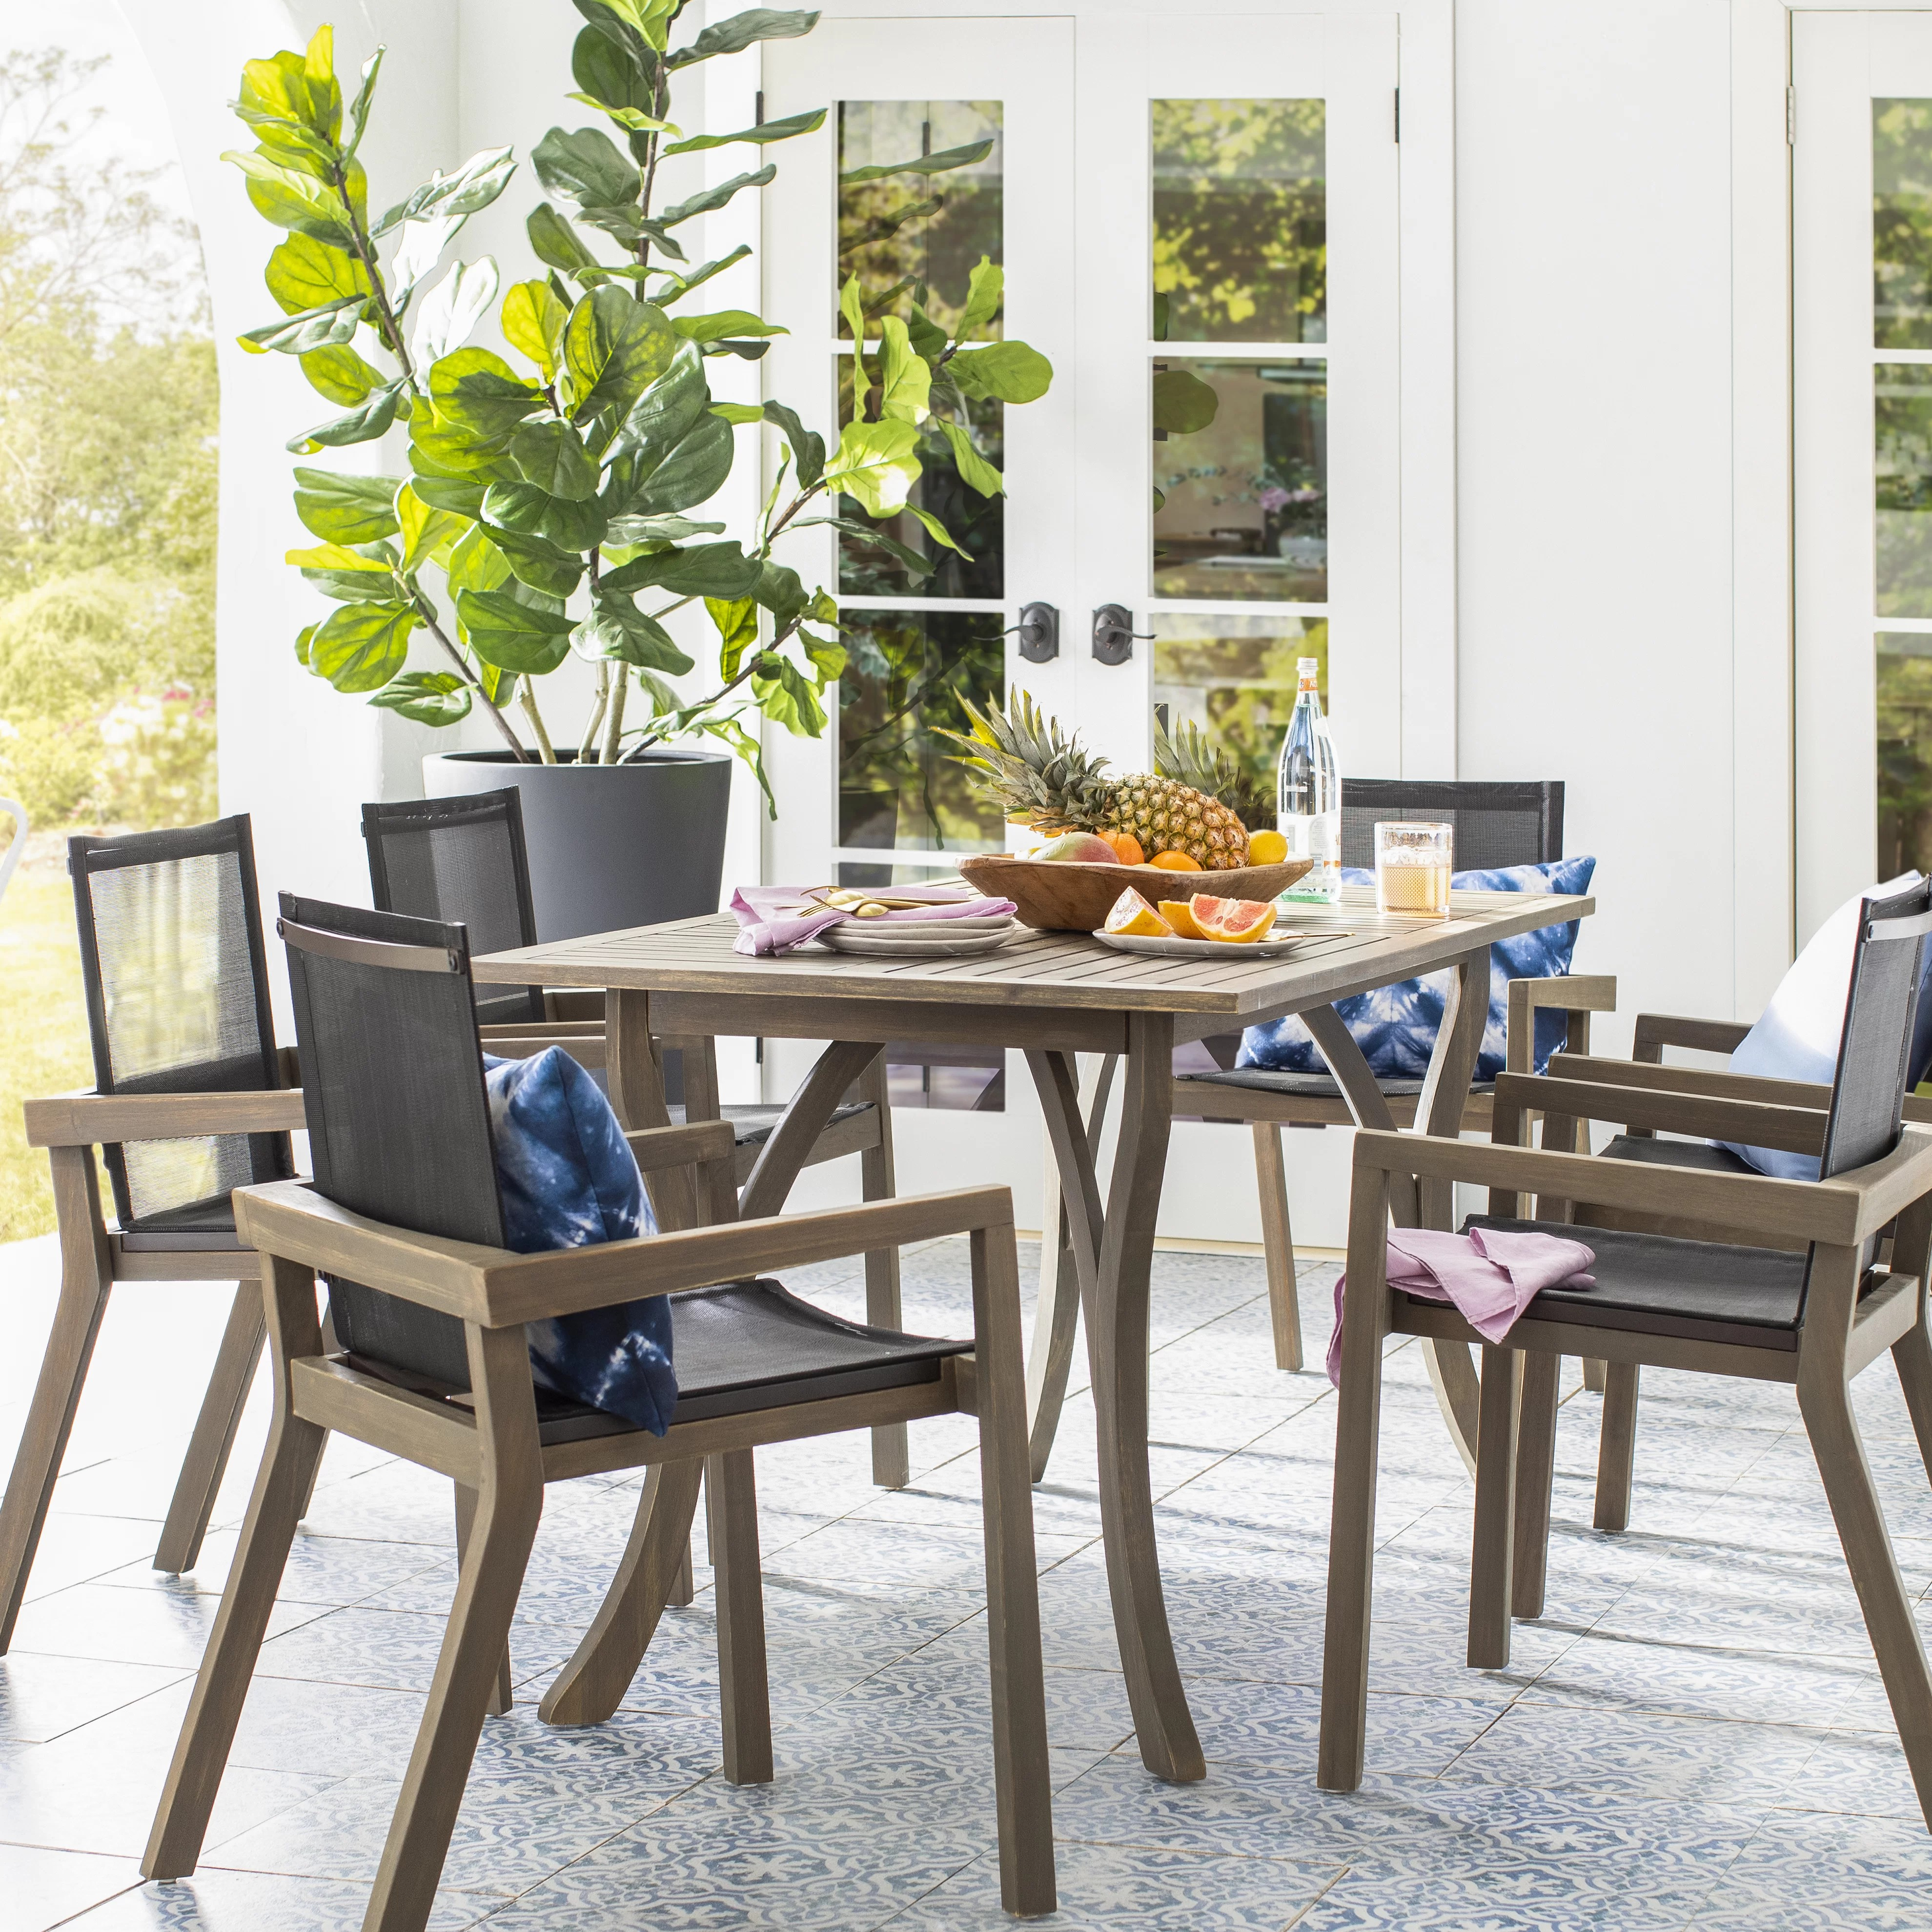 Petite Banquette Design Outdoor Furniture Joss Main